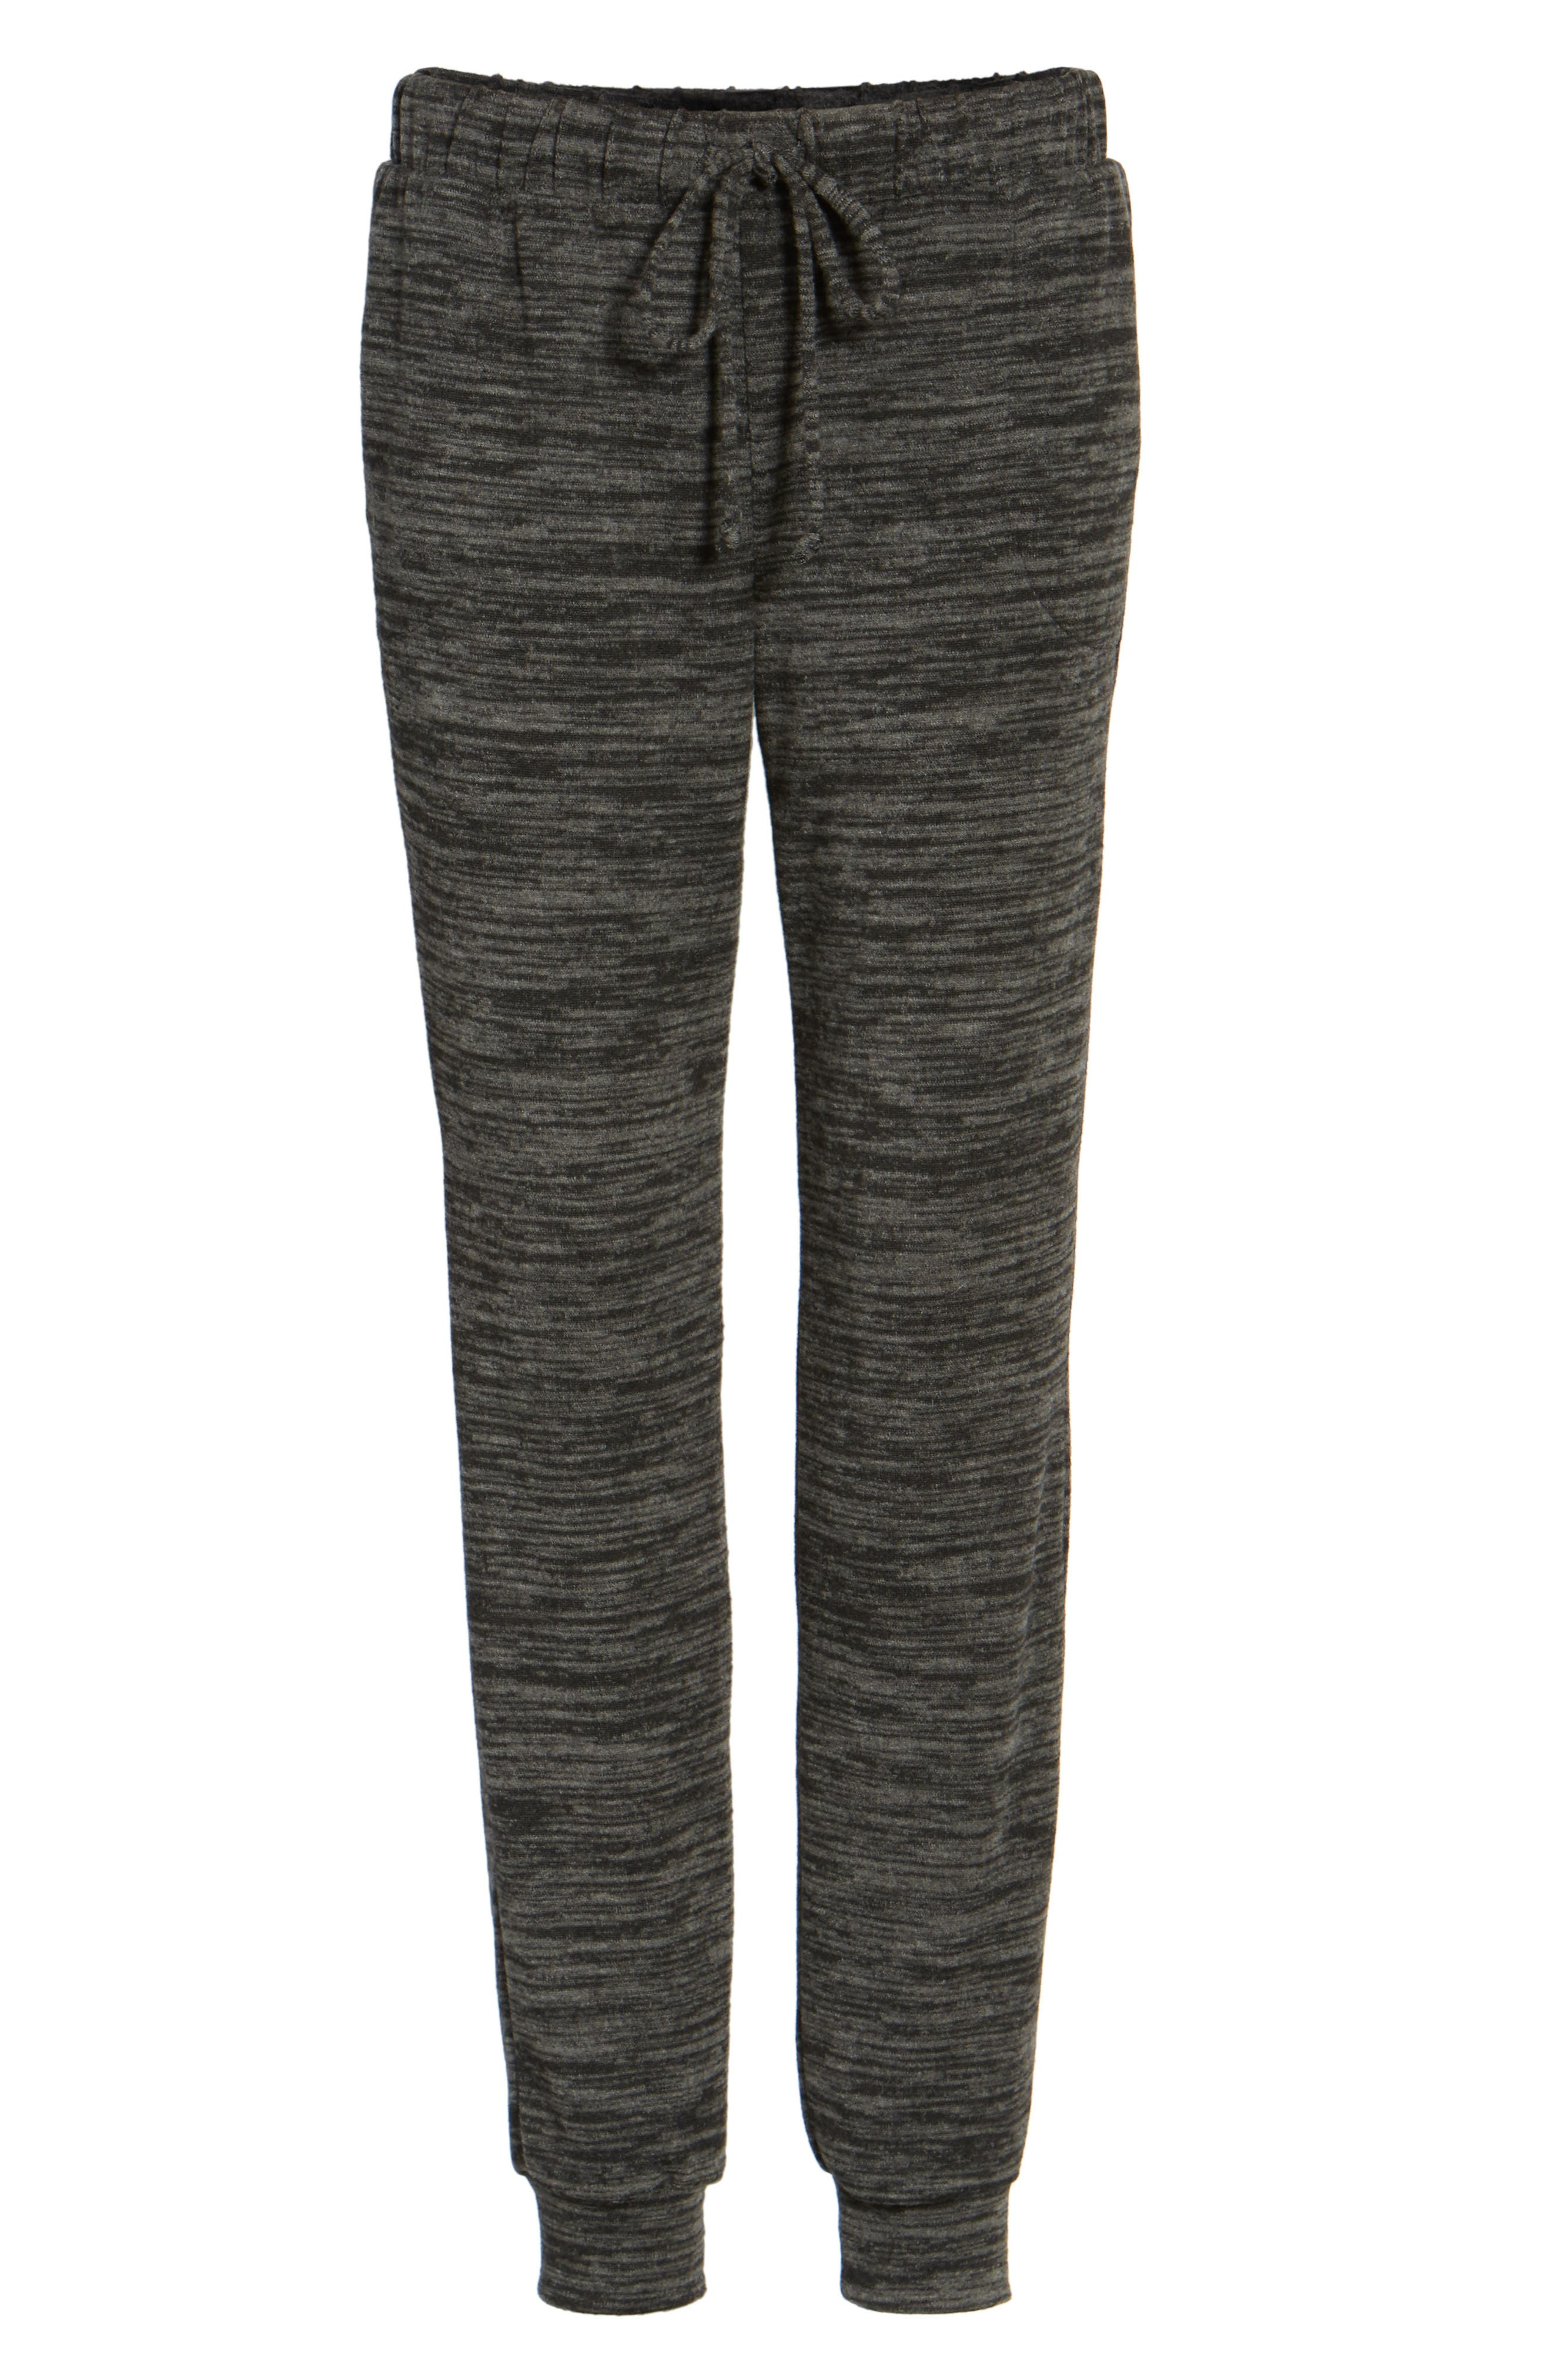 Cozy Jogger Pants,                             Alternate thumbnail 6, color,                             001